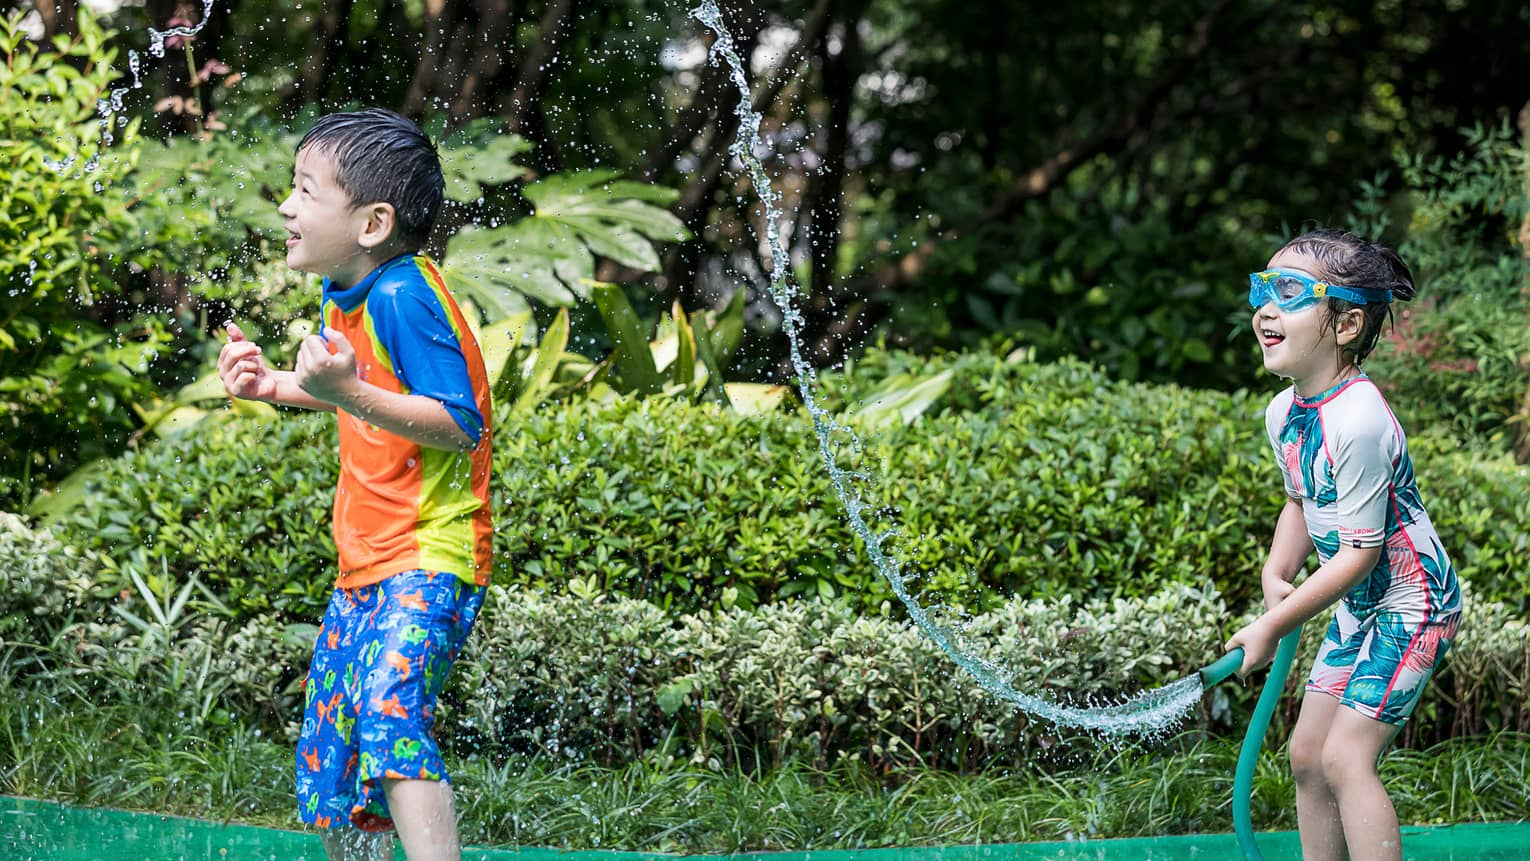 Young girl wearing swimsuit, goggles sprays boy with garden hose